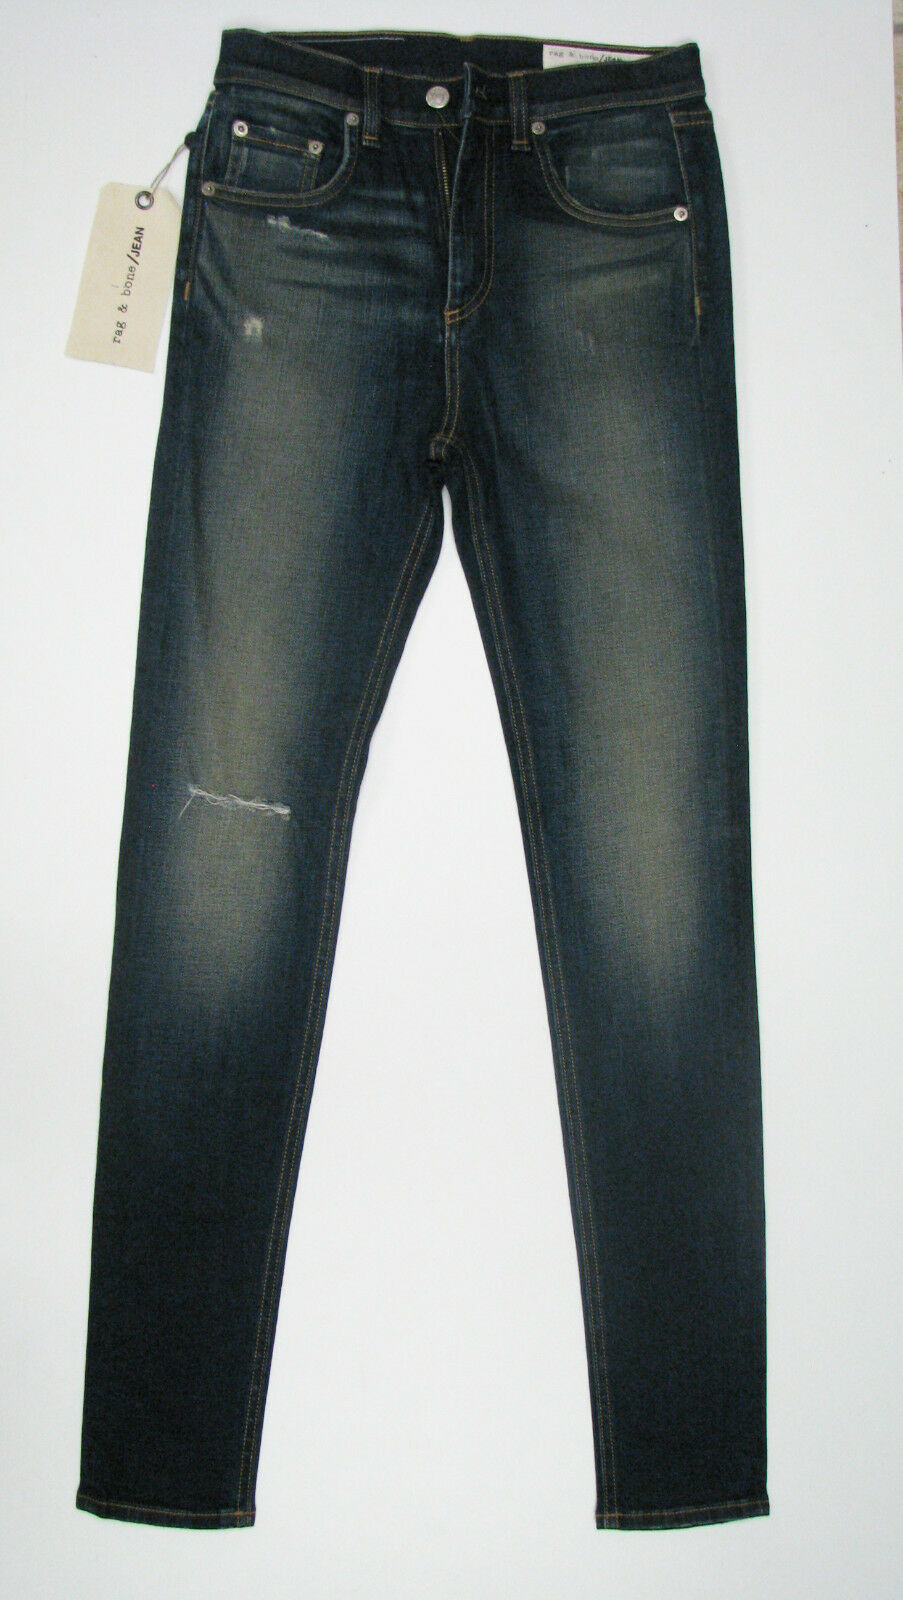 3c16f6d0 Rag & Bone Women New Jeans Denim Skinny Dark bluee Cotton High Rise  Boyfriend 26